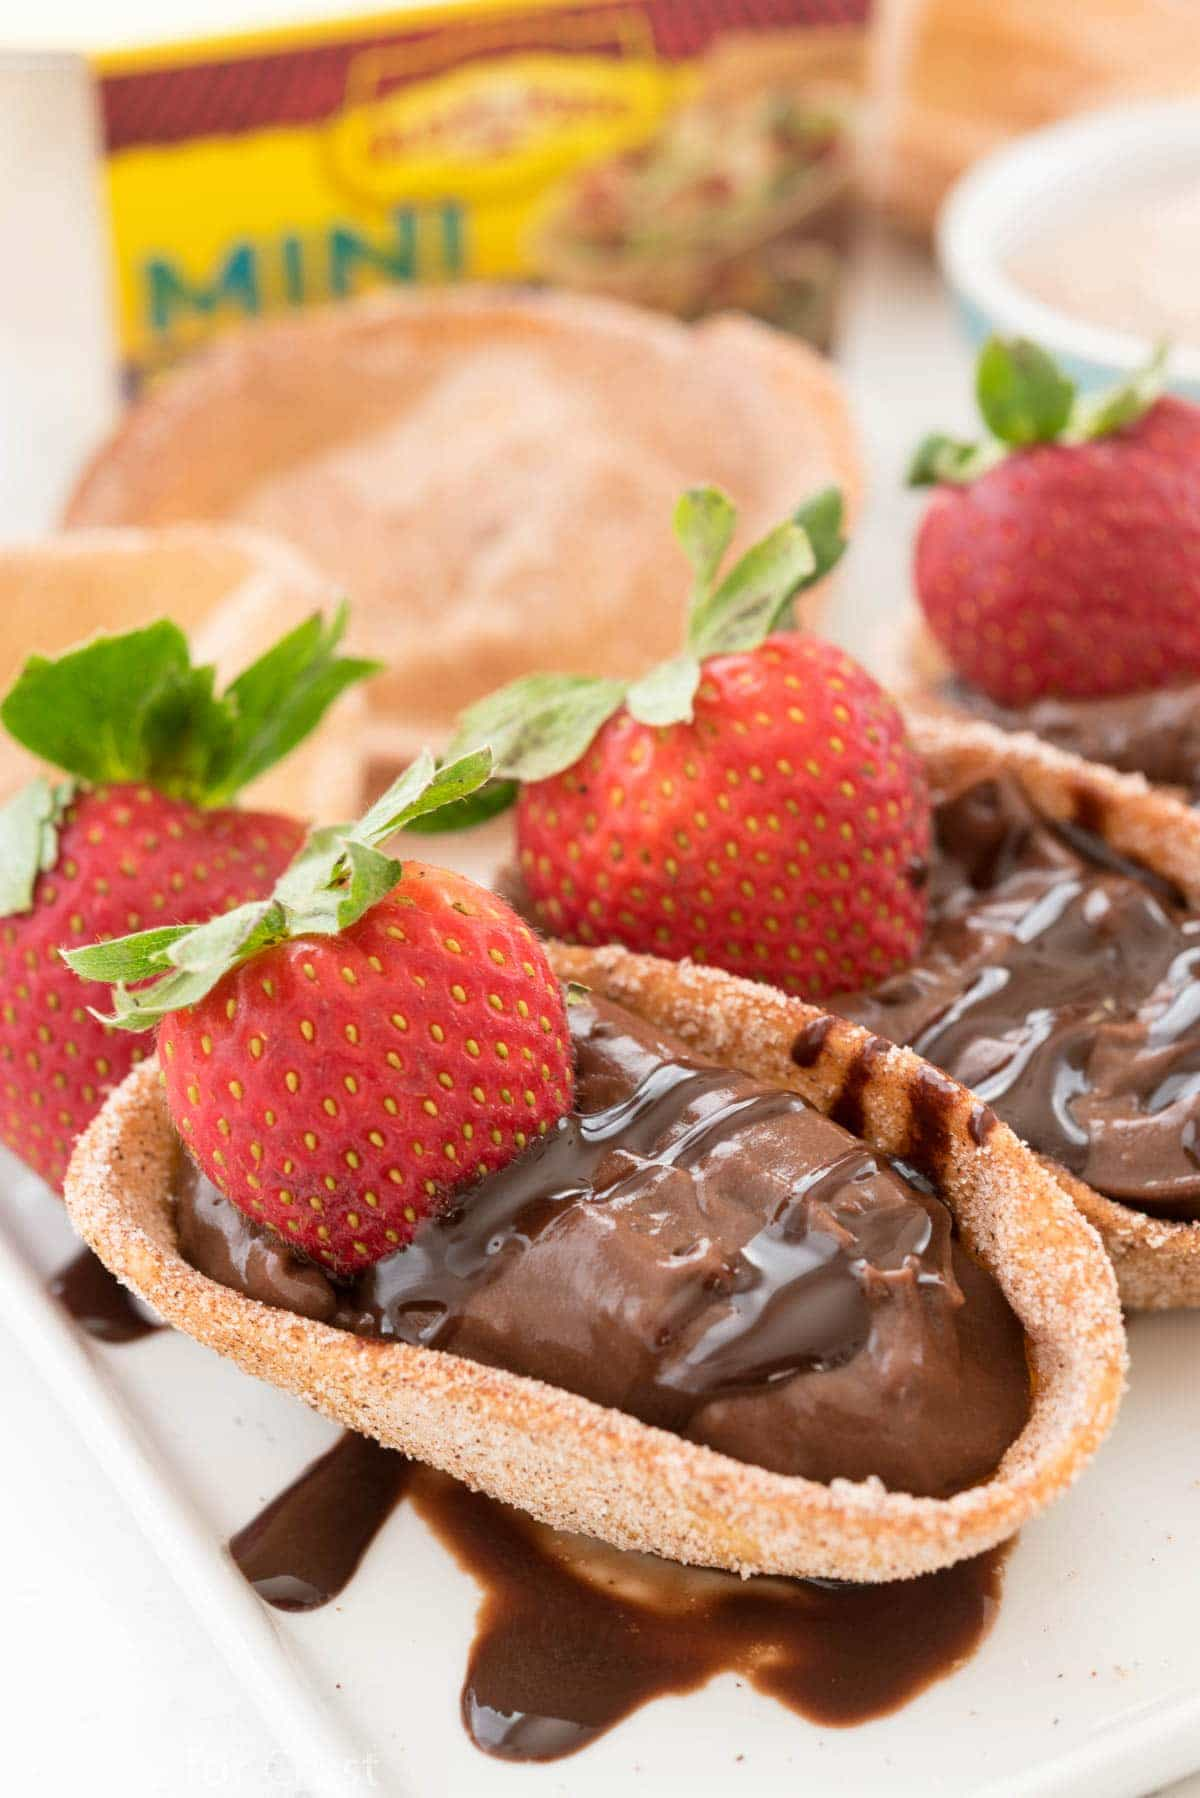 Chocolate Churro Pies - an easy churro made out of tortillas and filled with chocolate pudding!